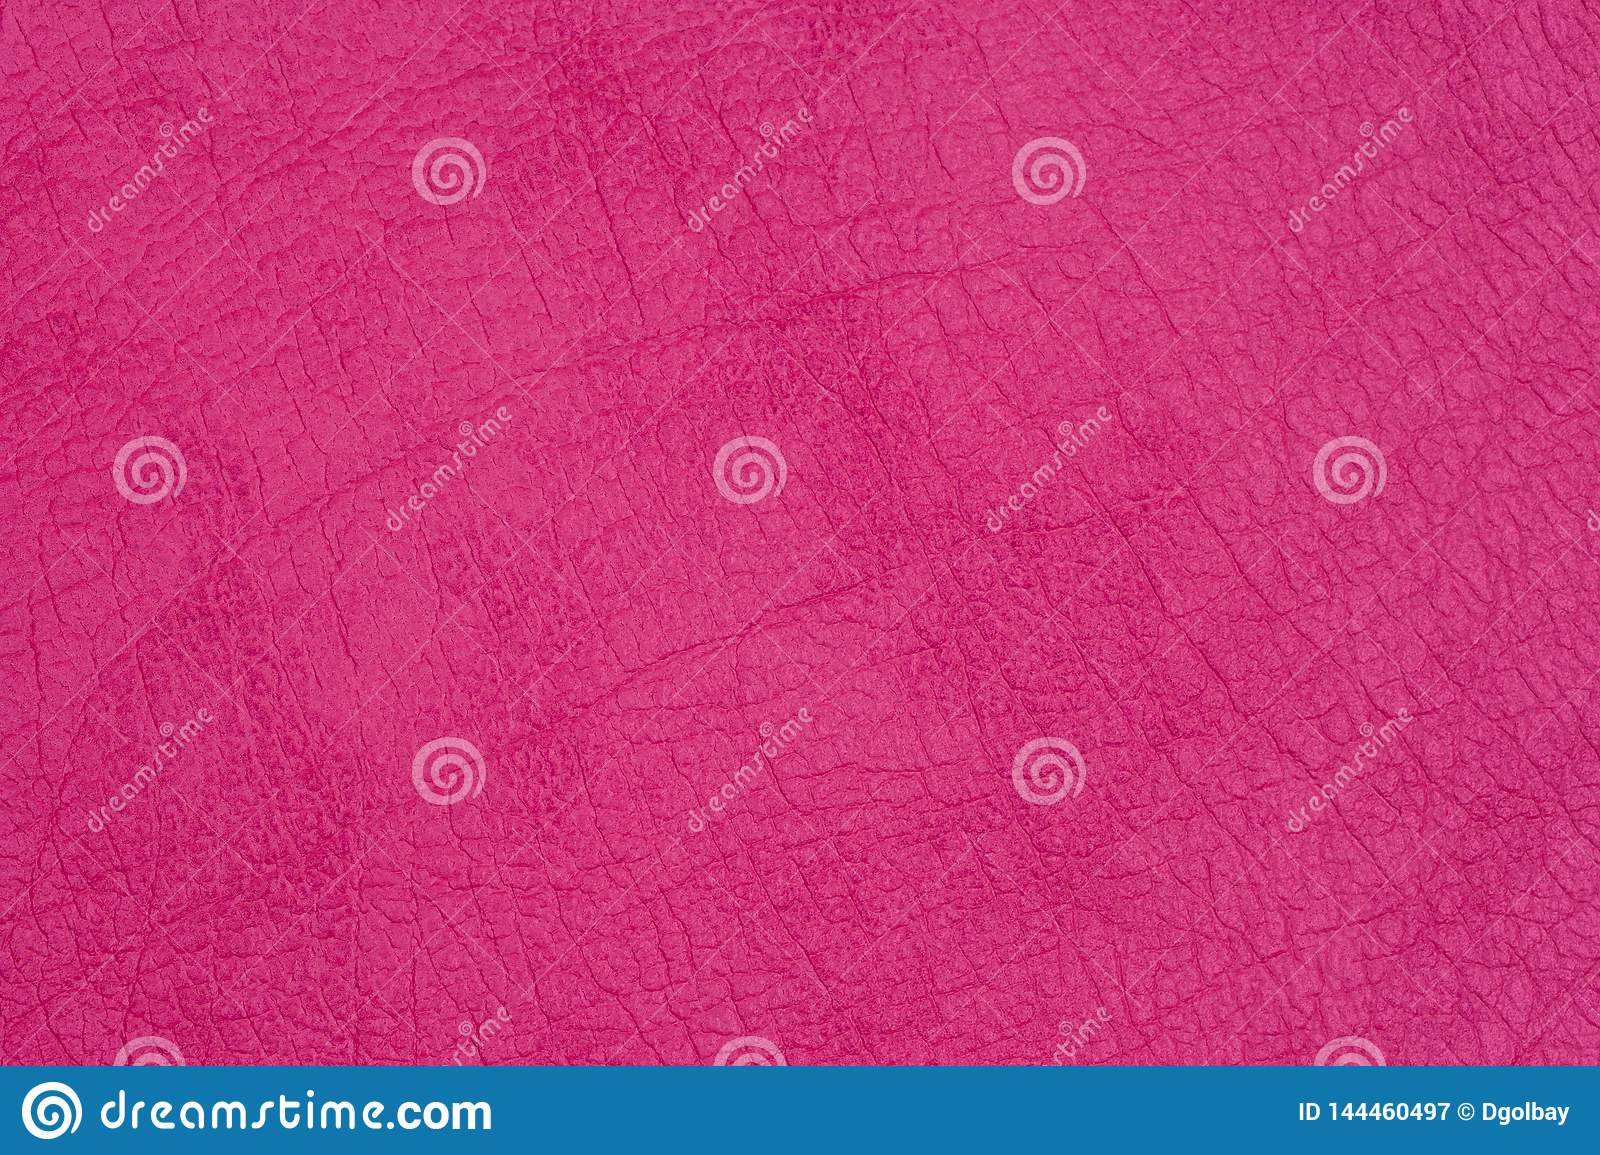 Genuine leather texture, bright pink